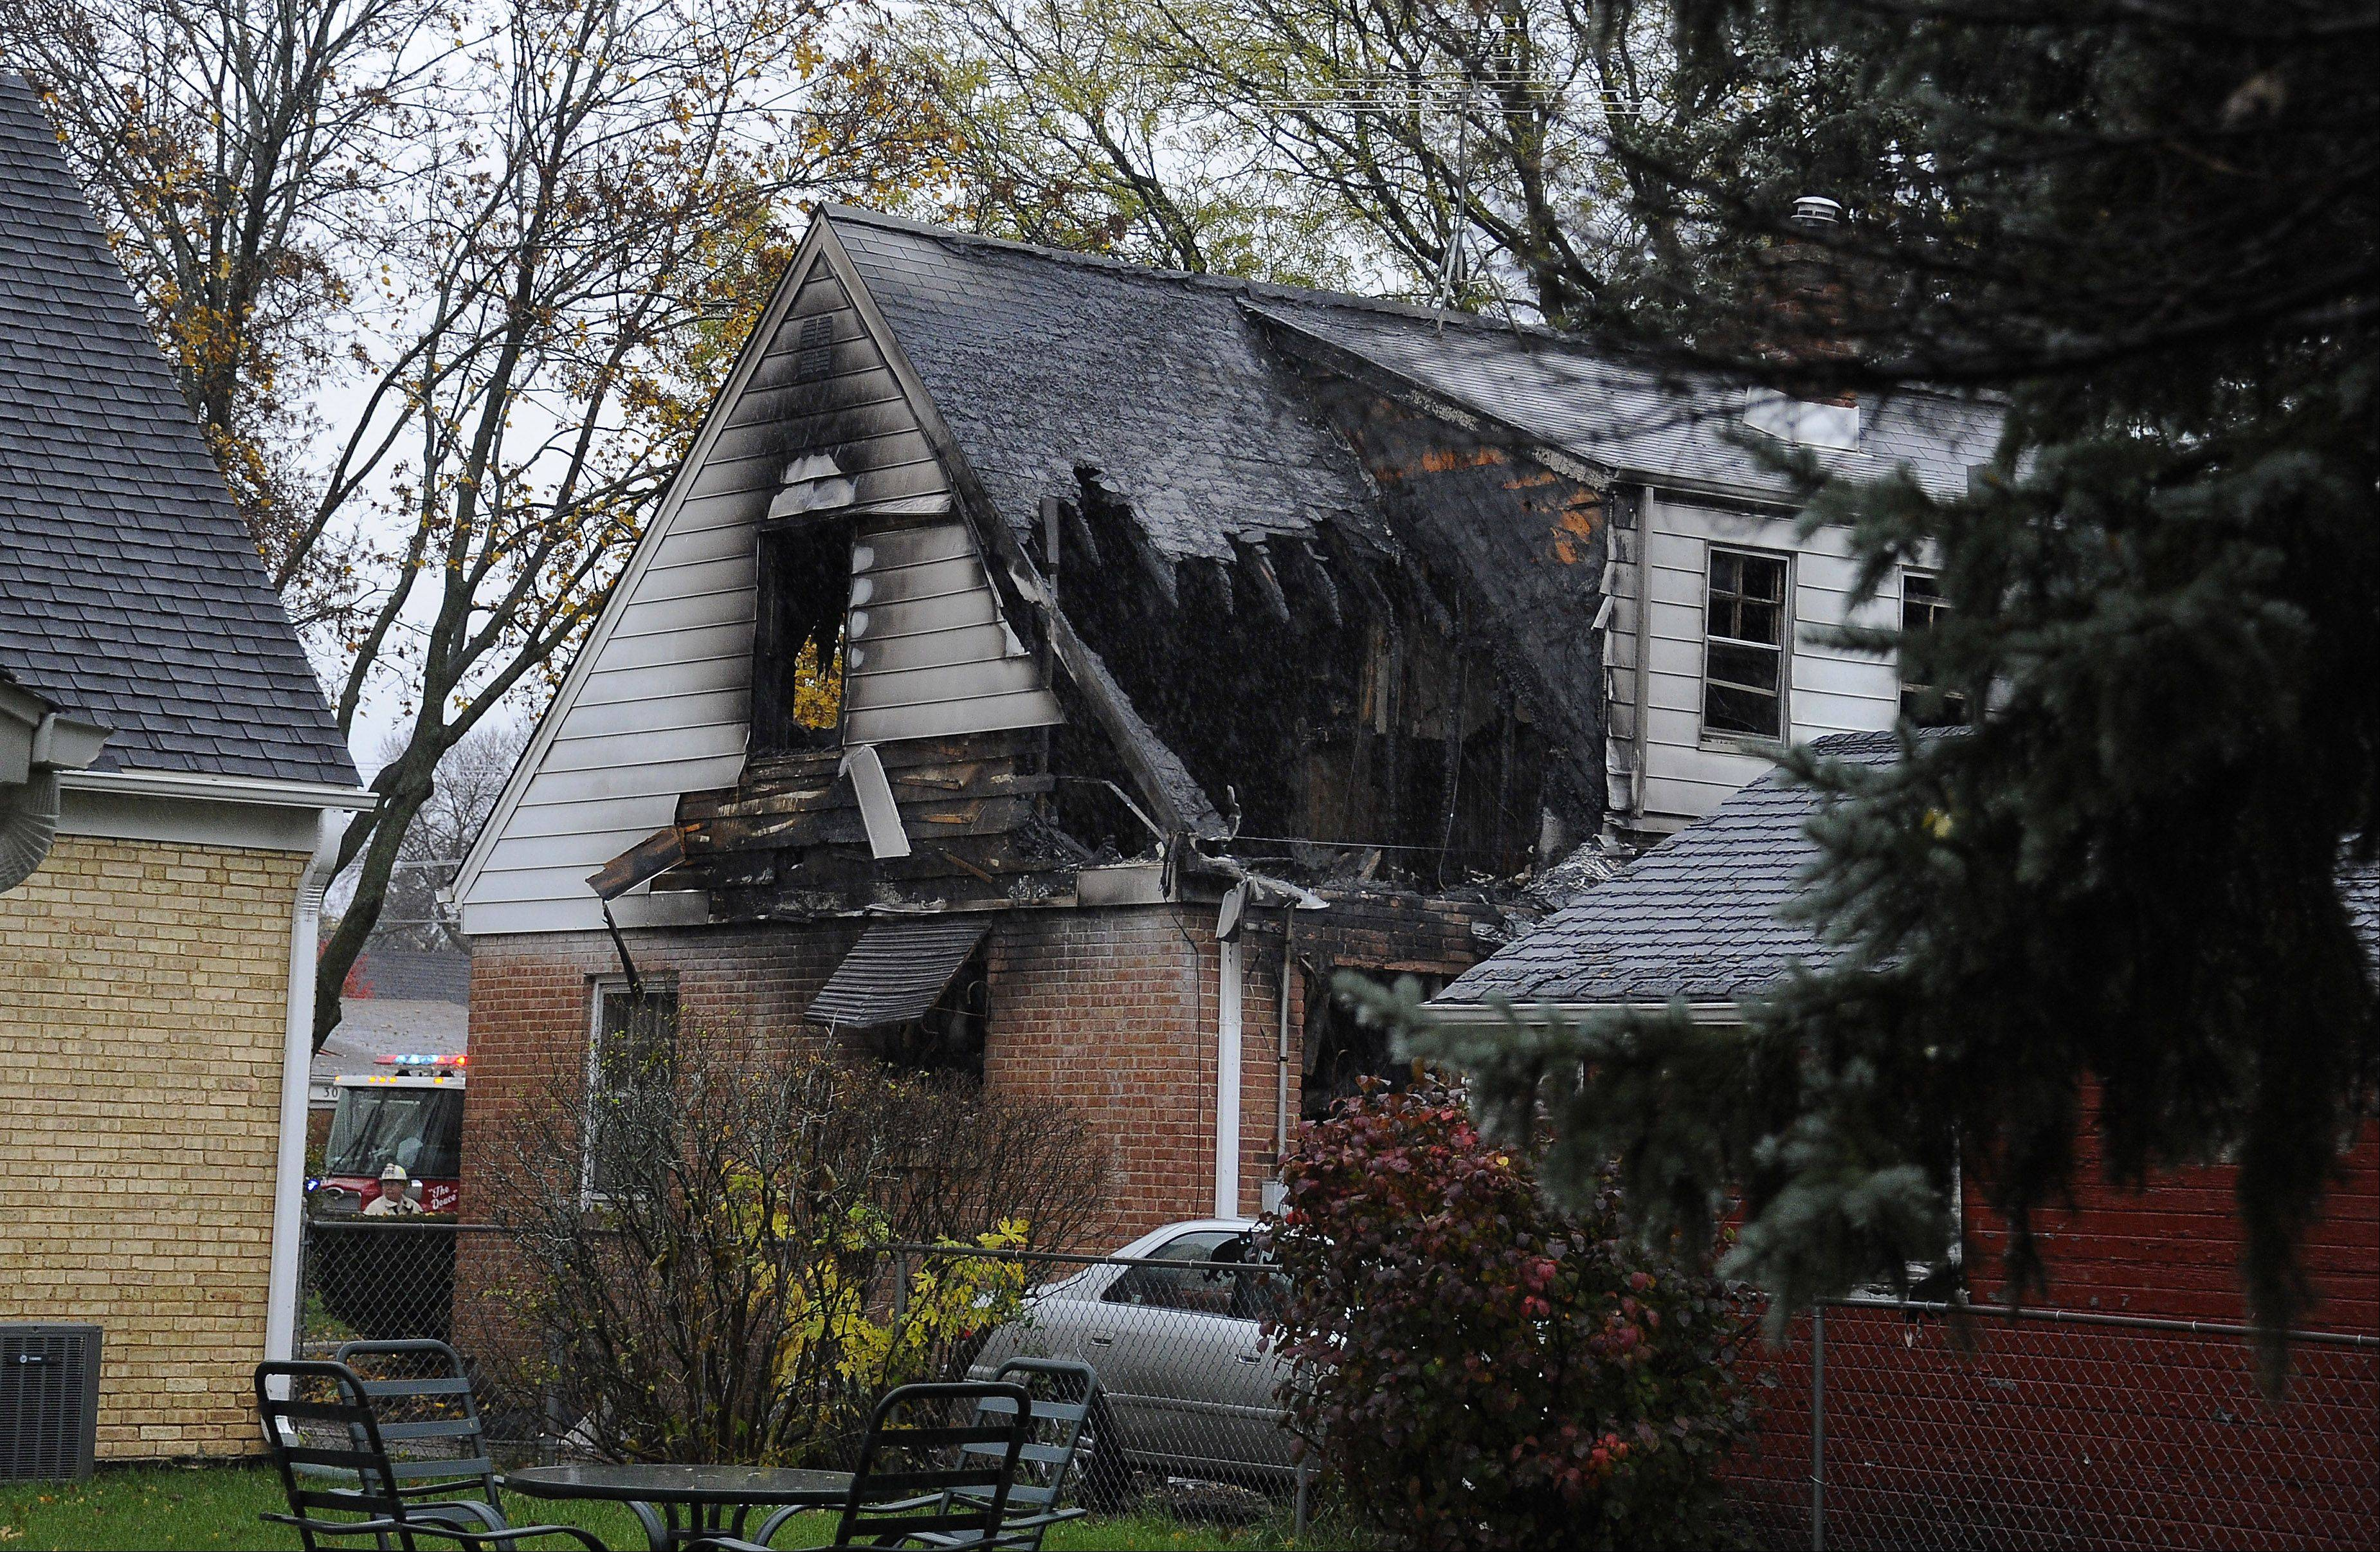 Two victims of Arlington Hts. house fire were Russian immigrants